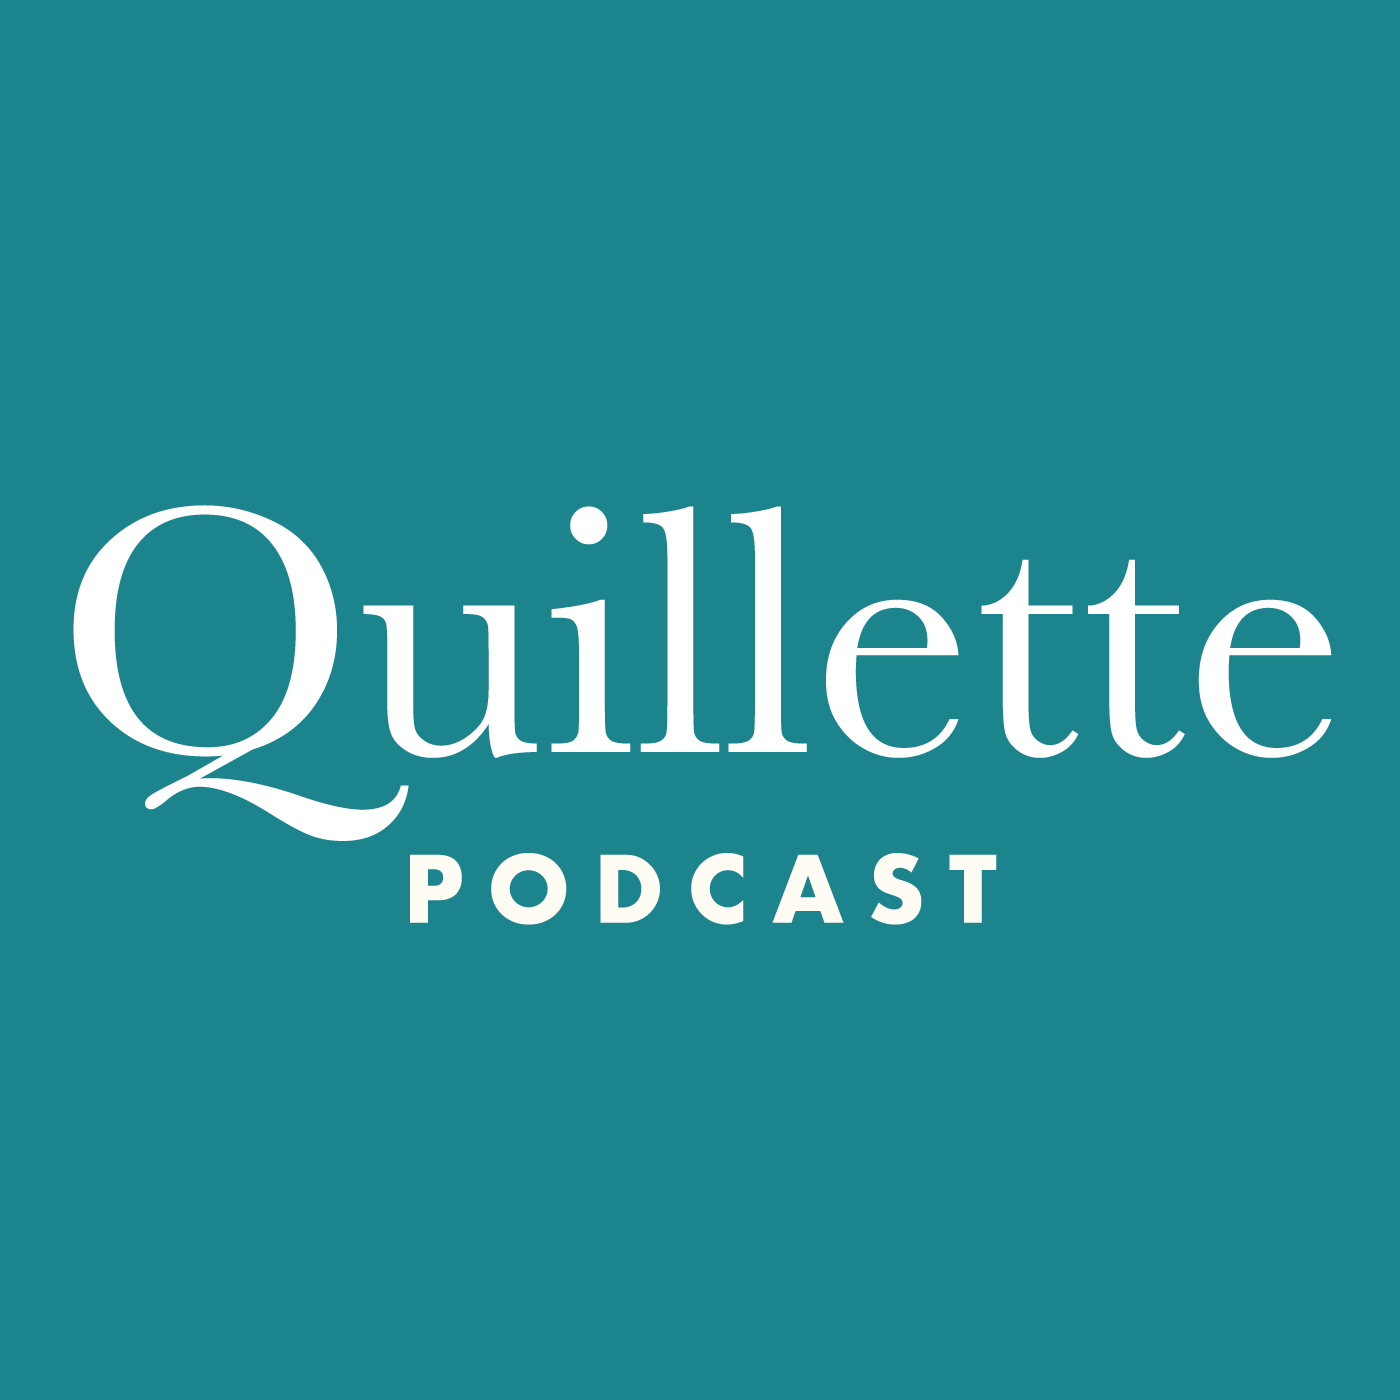 Quillette Podcast | Listen Free on Castbox.